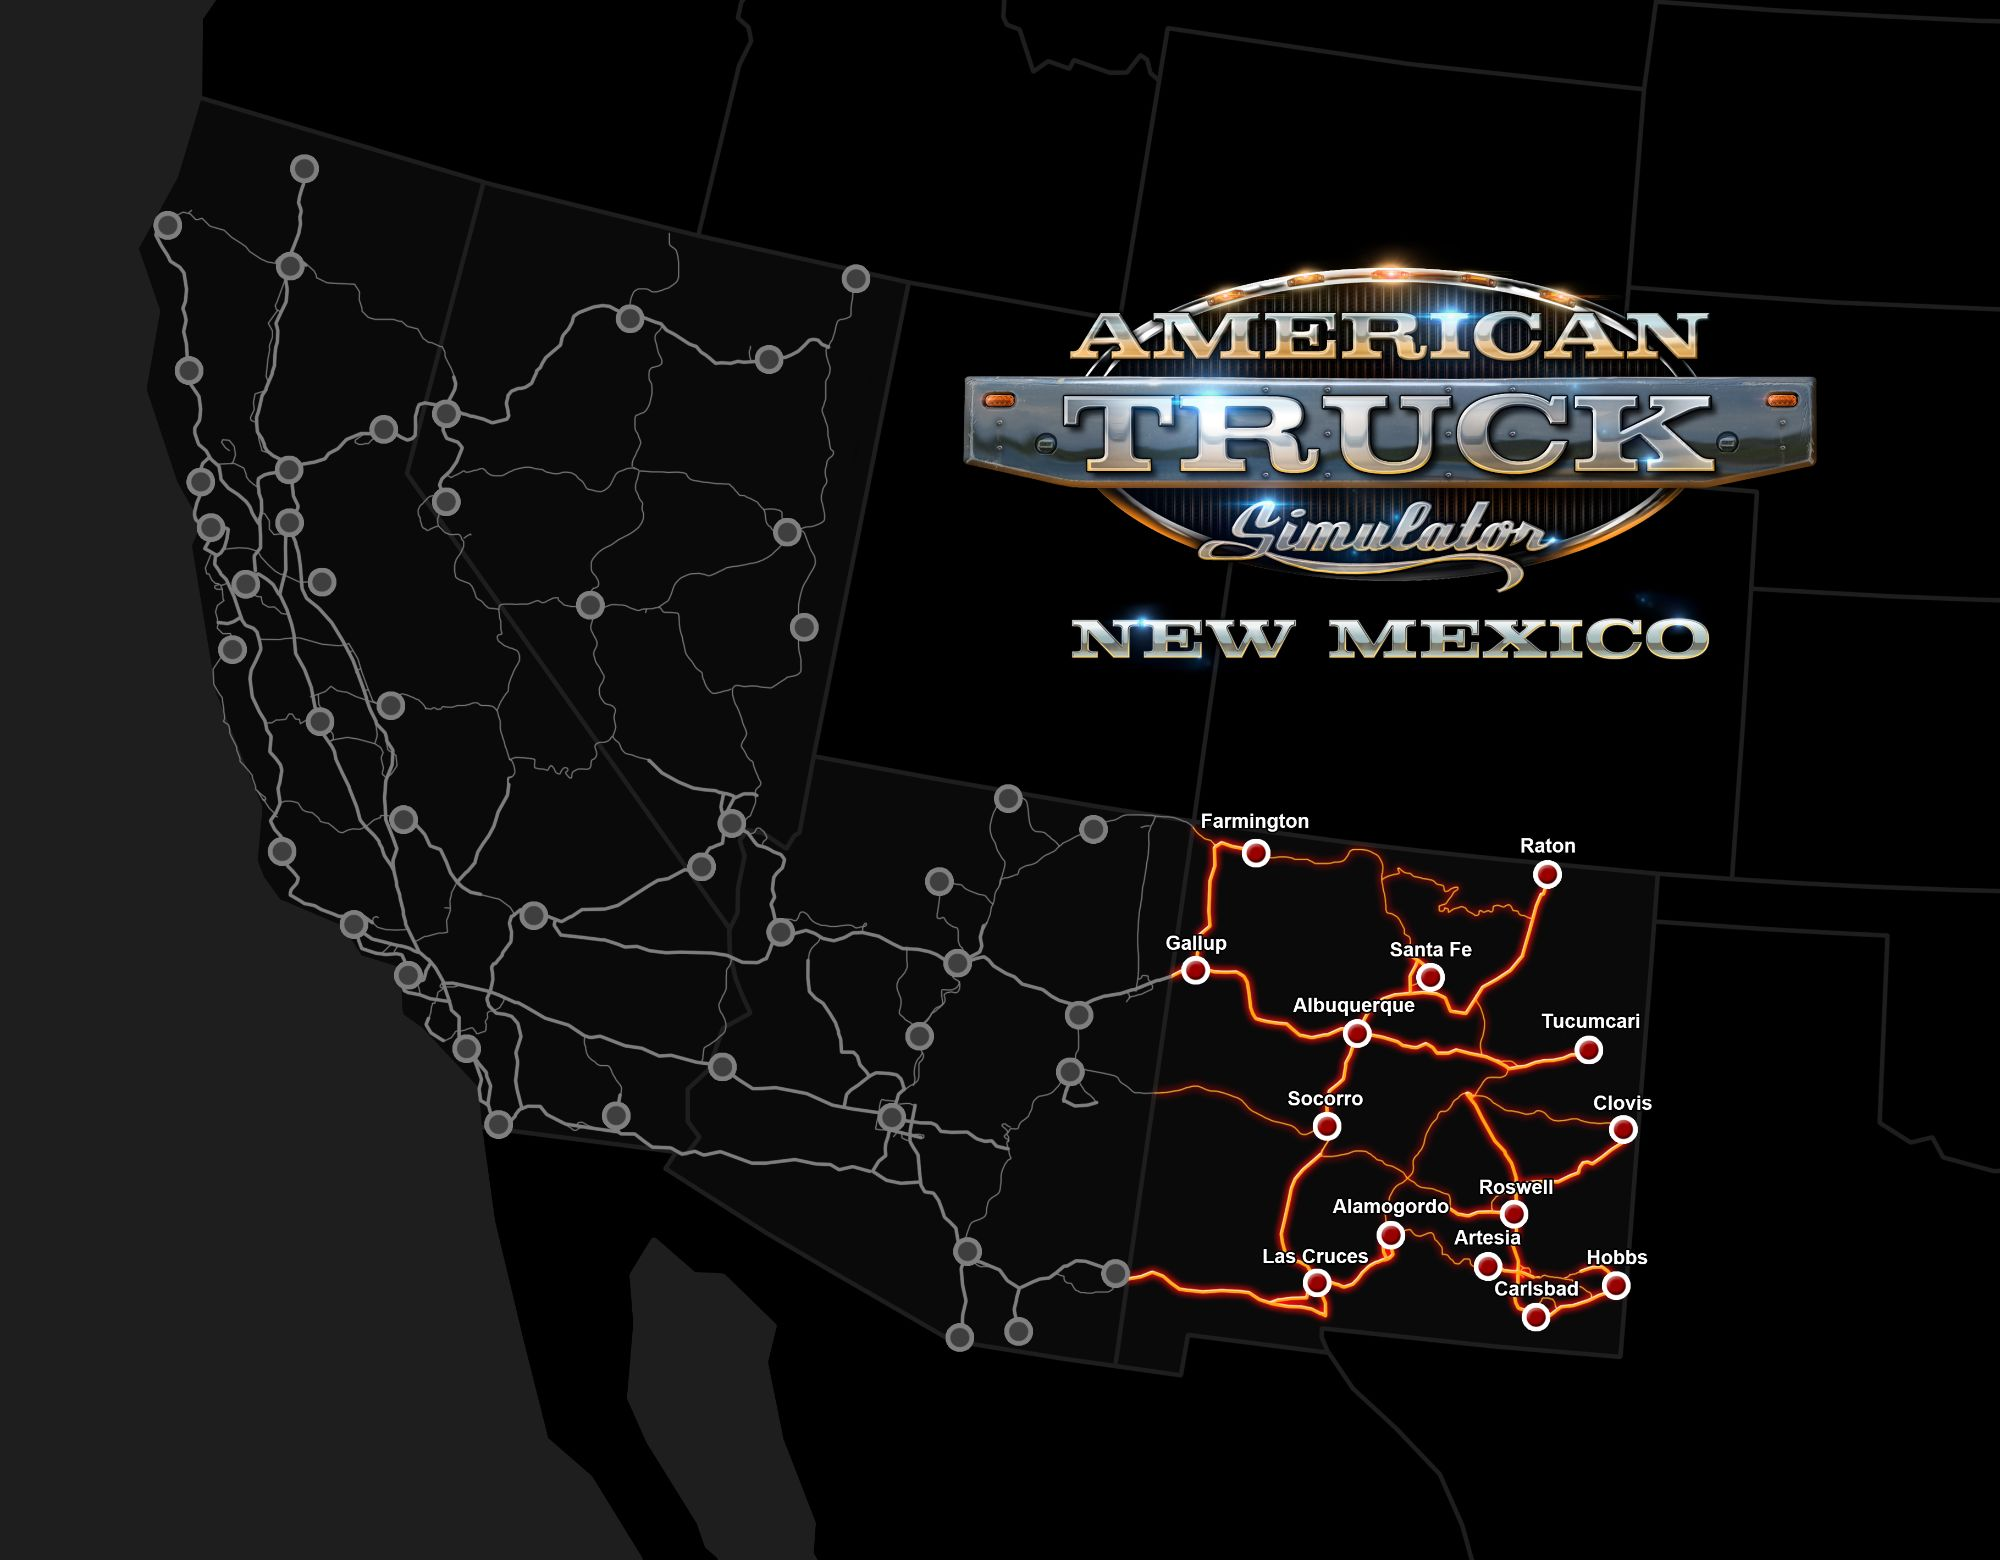 Image showing the map for American Truck Simulator New Mexico